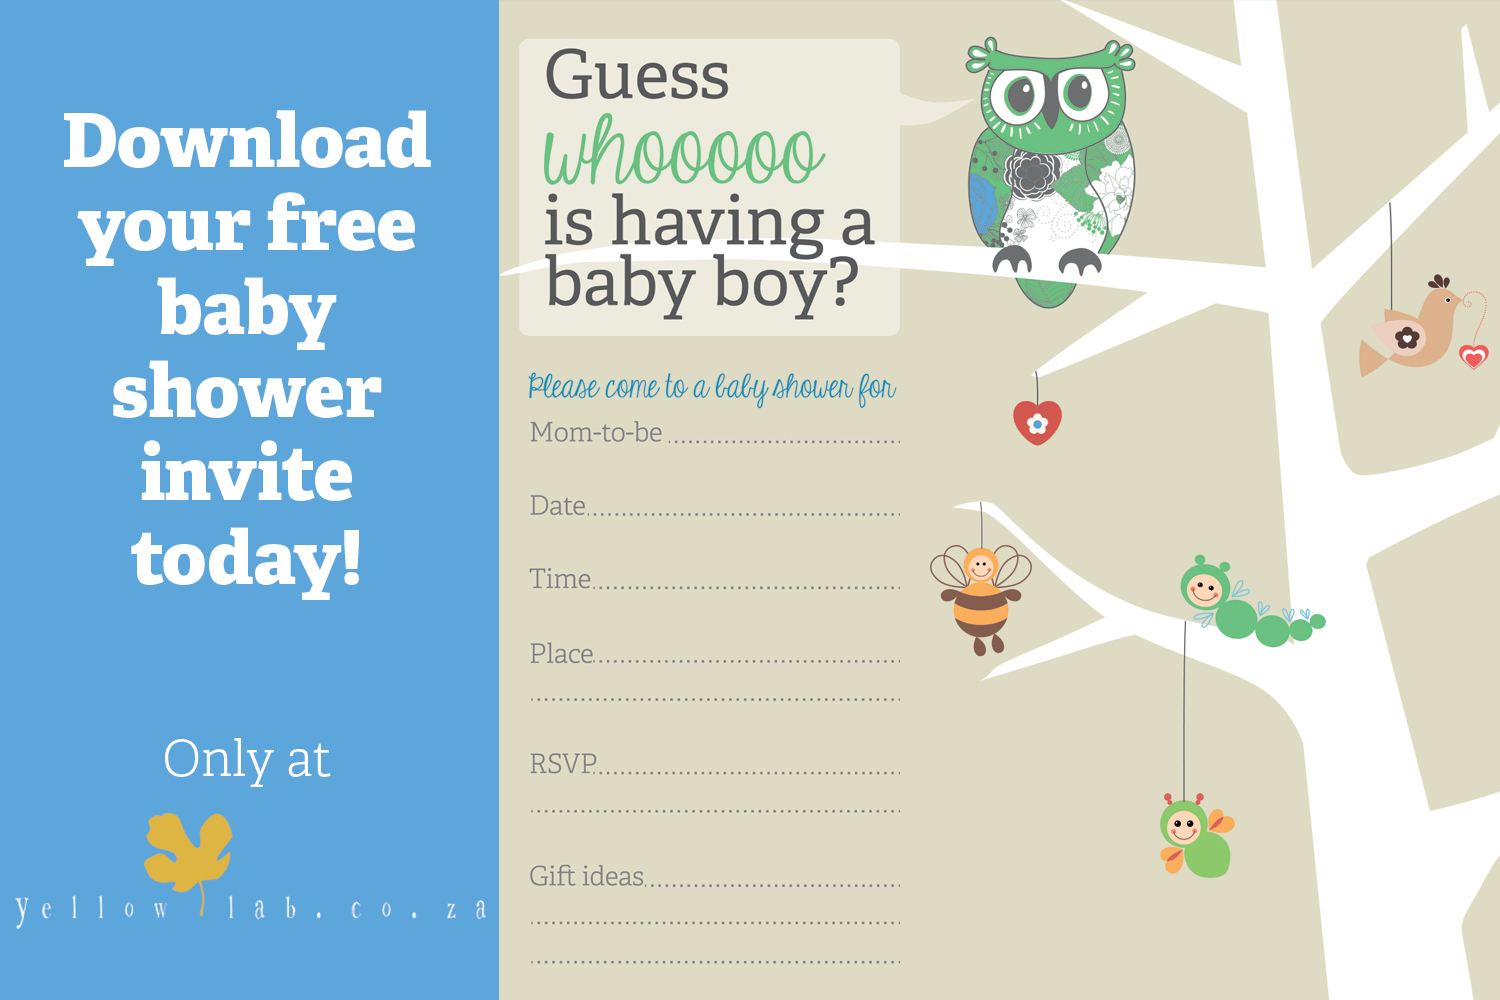 Click on this picture to download your free boy baby shower invite. {TIP Once you've right clicked on the image and a new window opens, right click on the picture and use Save Image As to save it to your desktop.}